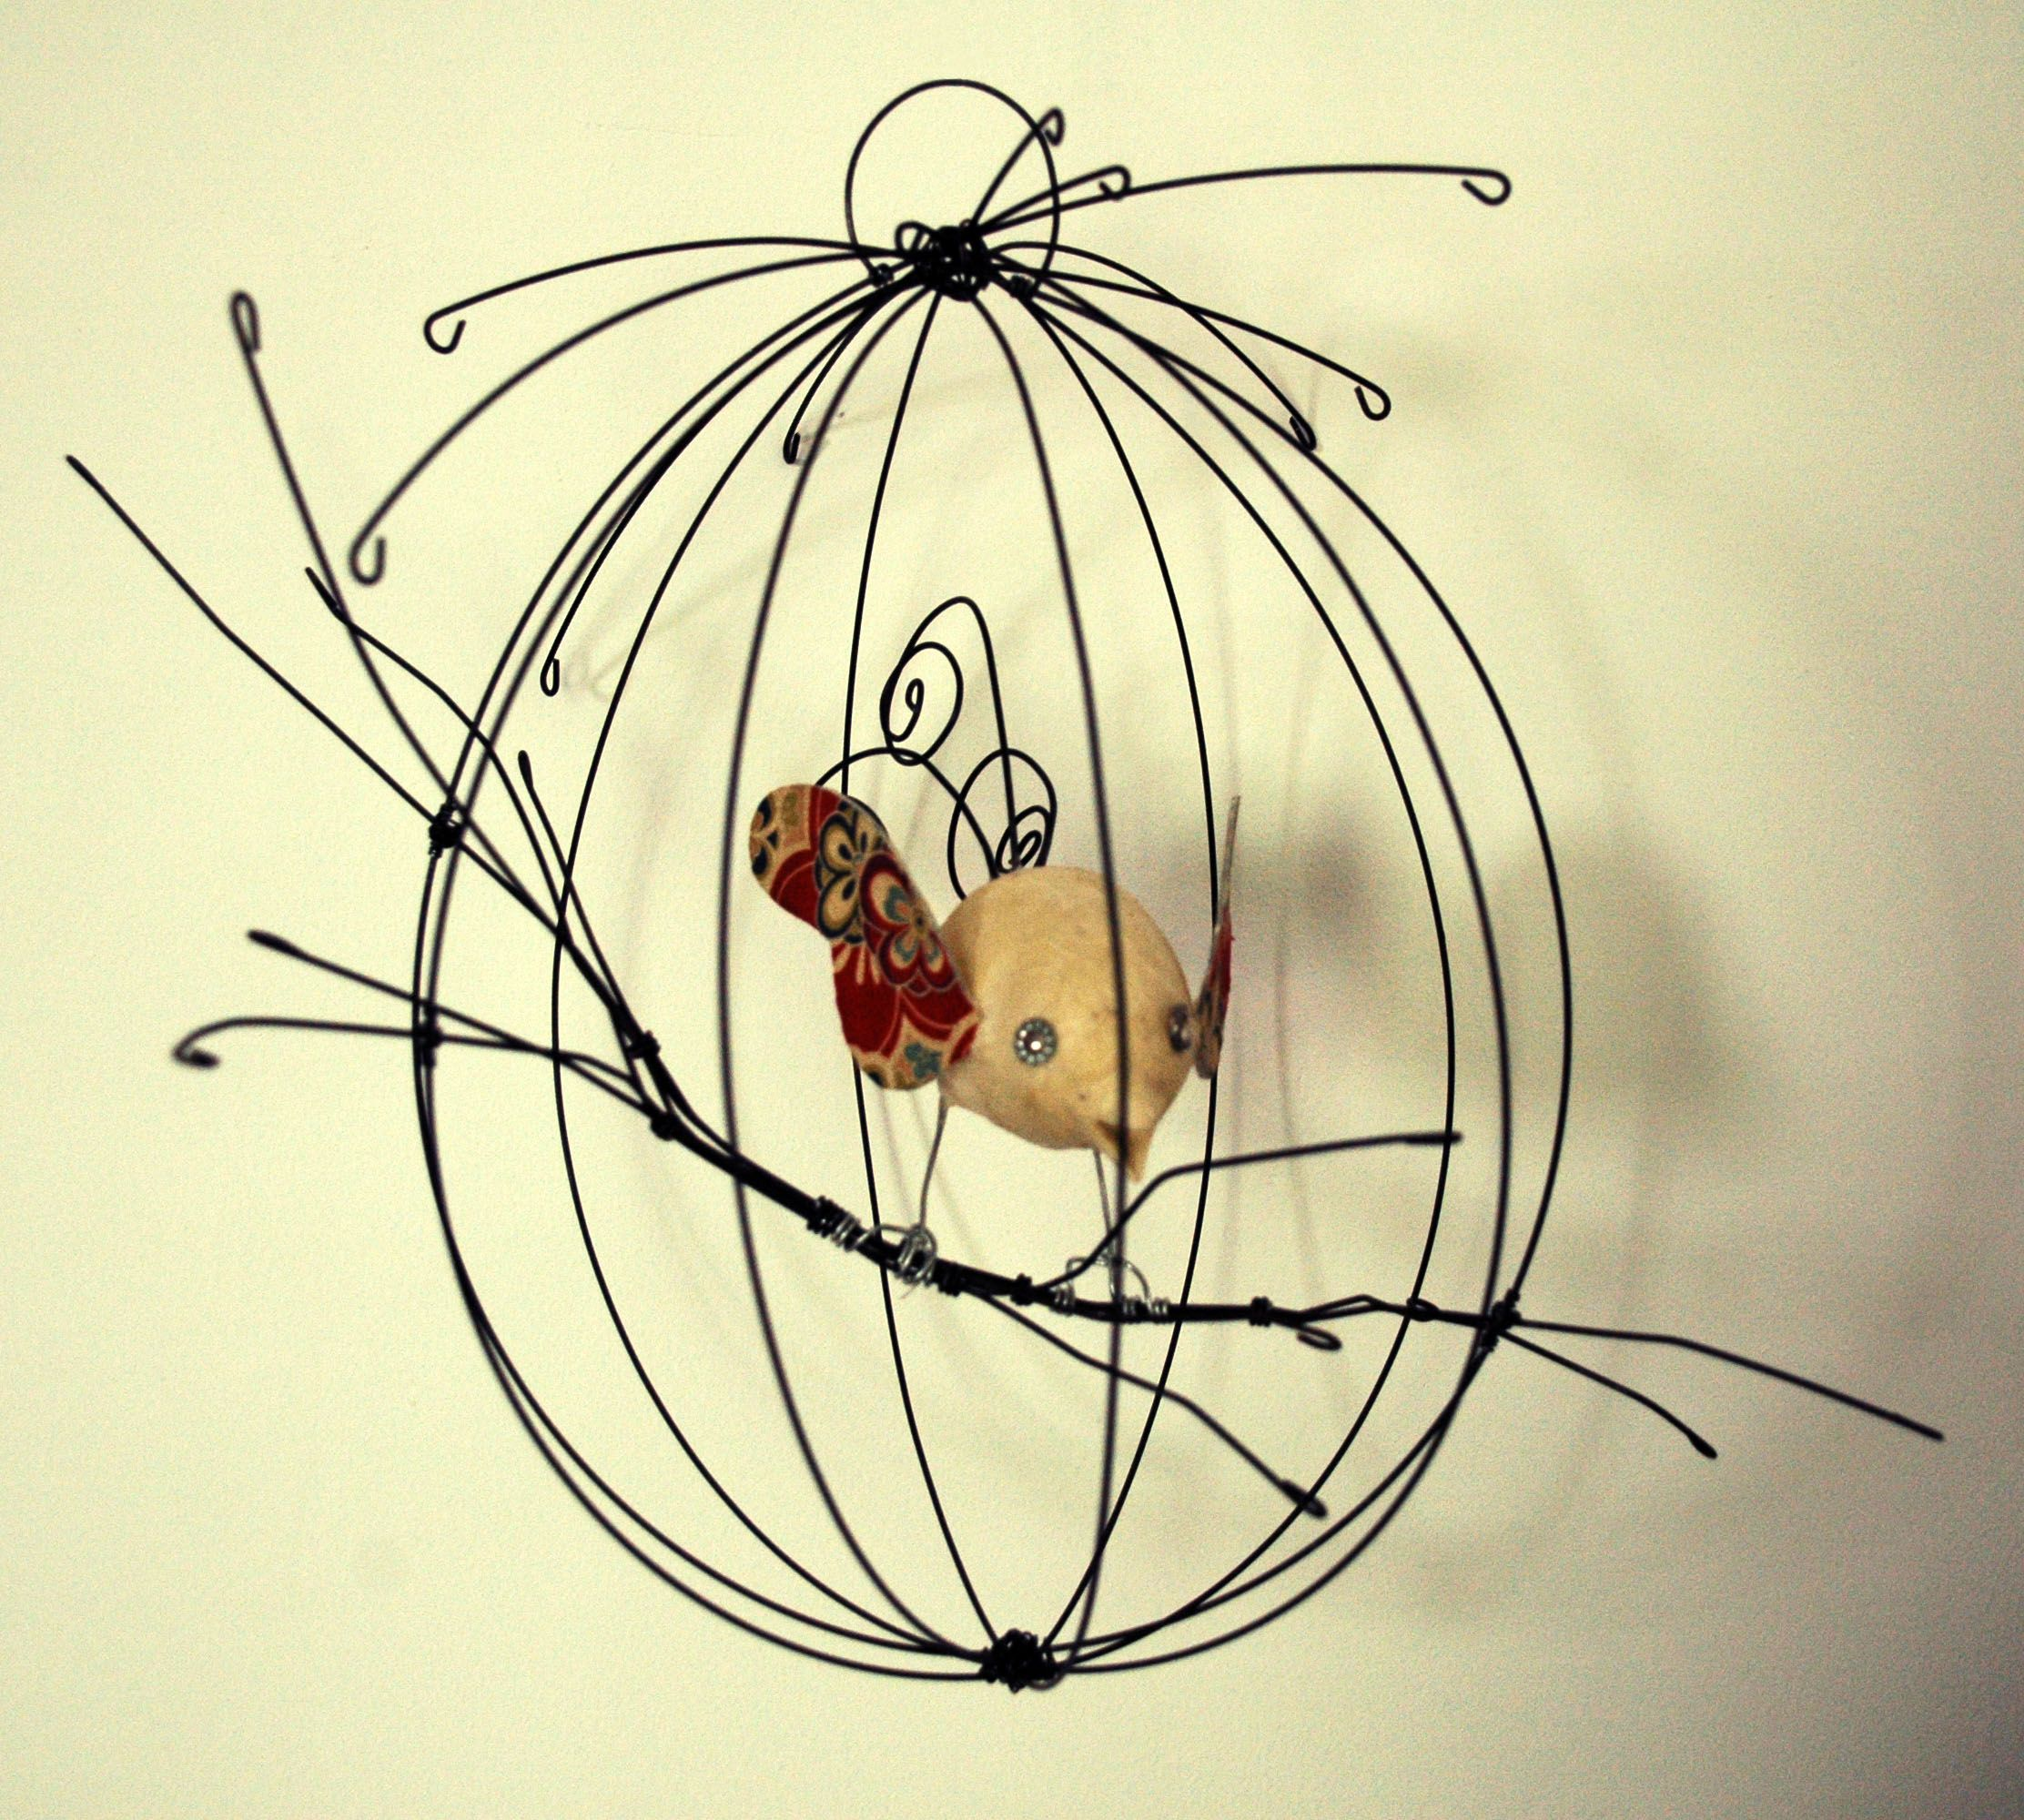 bird cage in wire - would look nice on wall with a crocheted bird ...